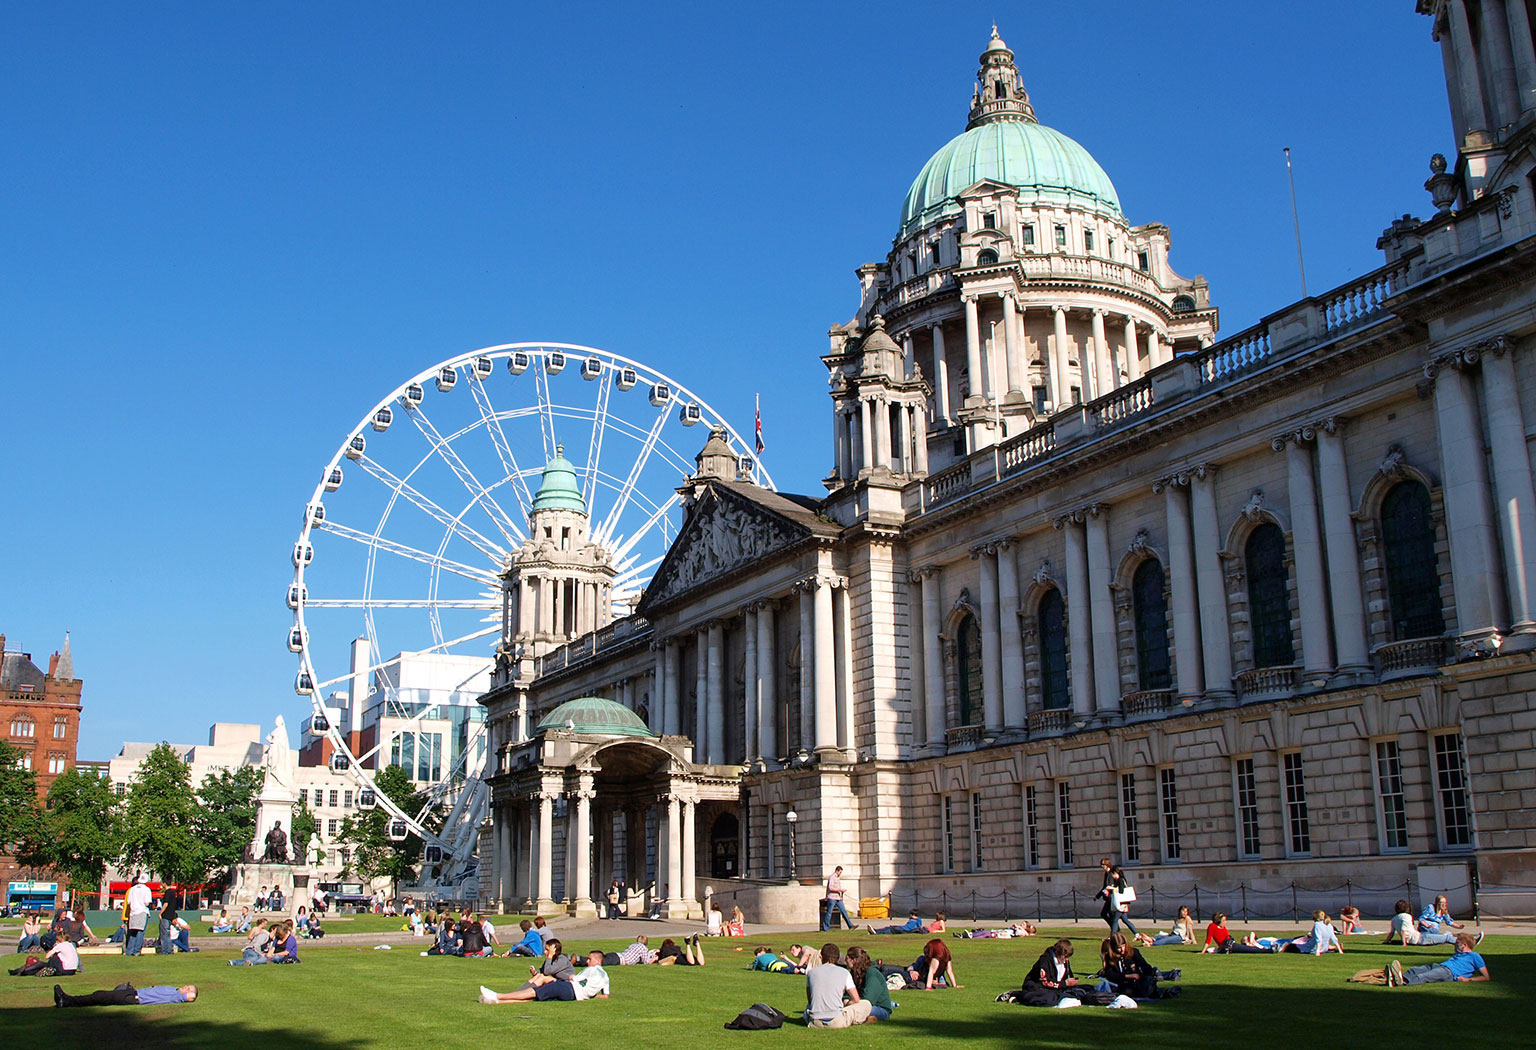 Photograph of Belfast City Hall by Iker Merodio